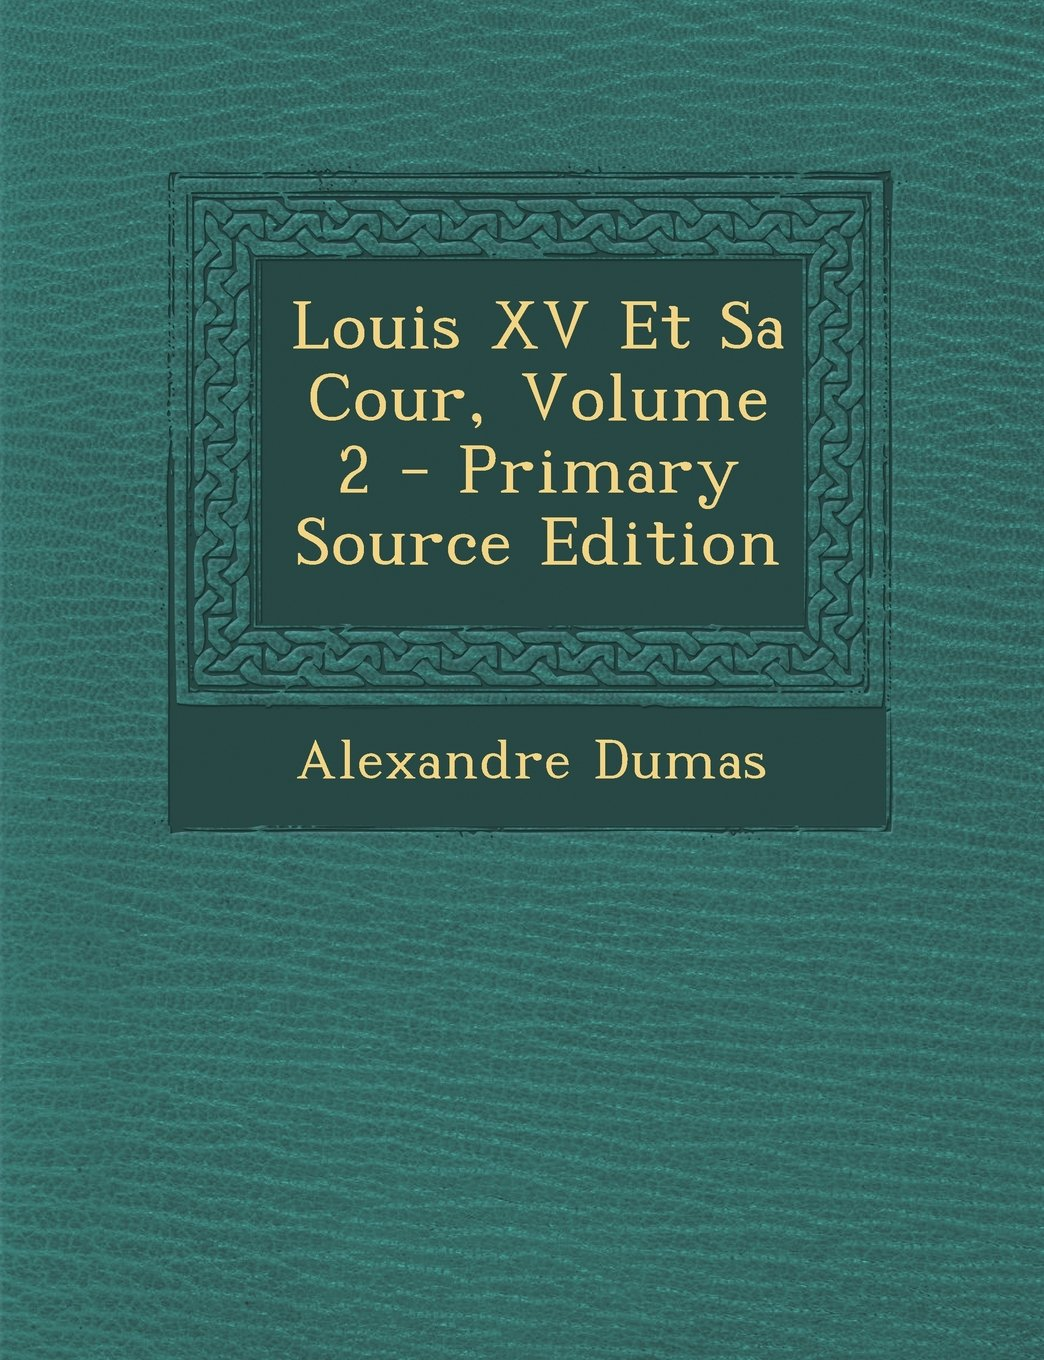 Download Louis XV Et Sa Cour, Volume 2 - Primary Source Edition (French Edition) ebook